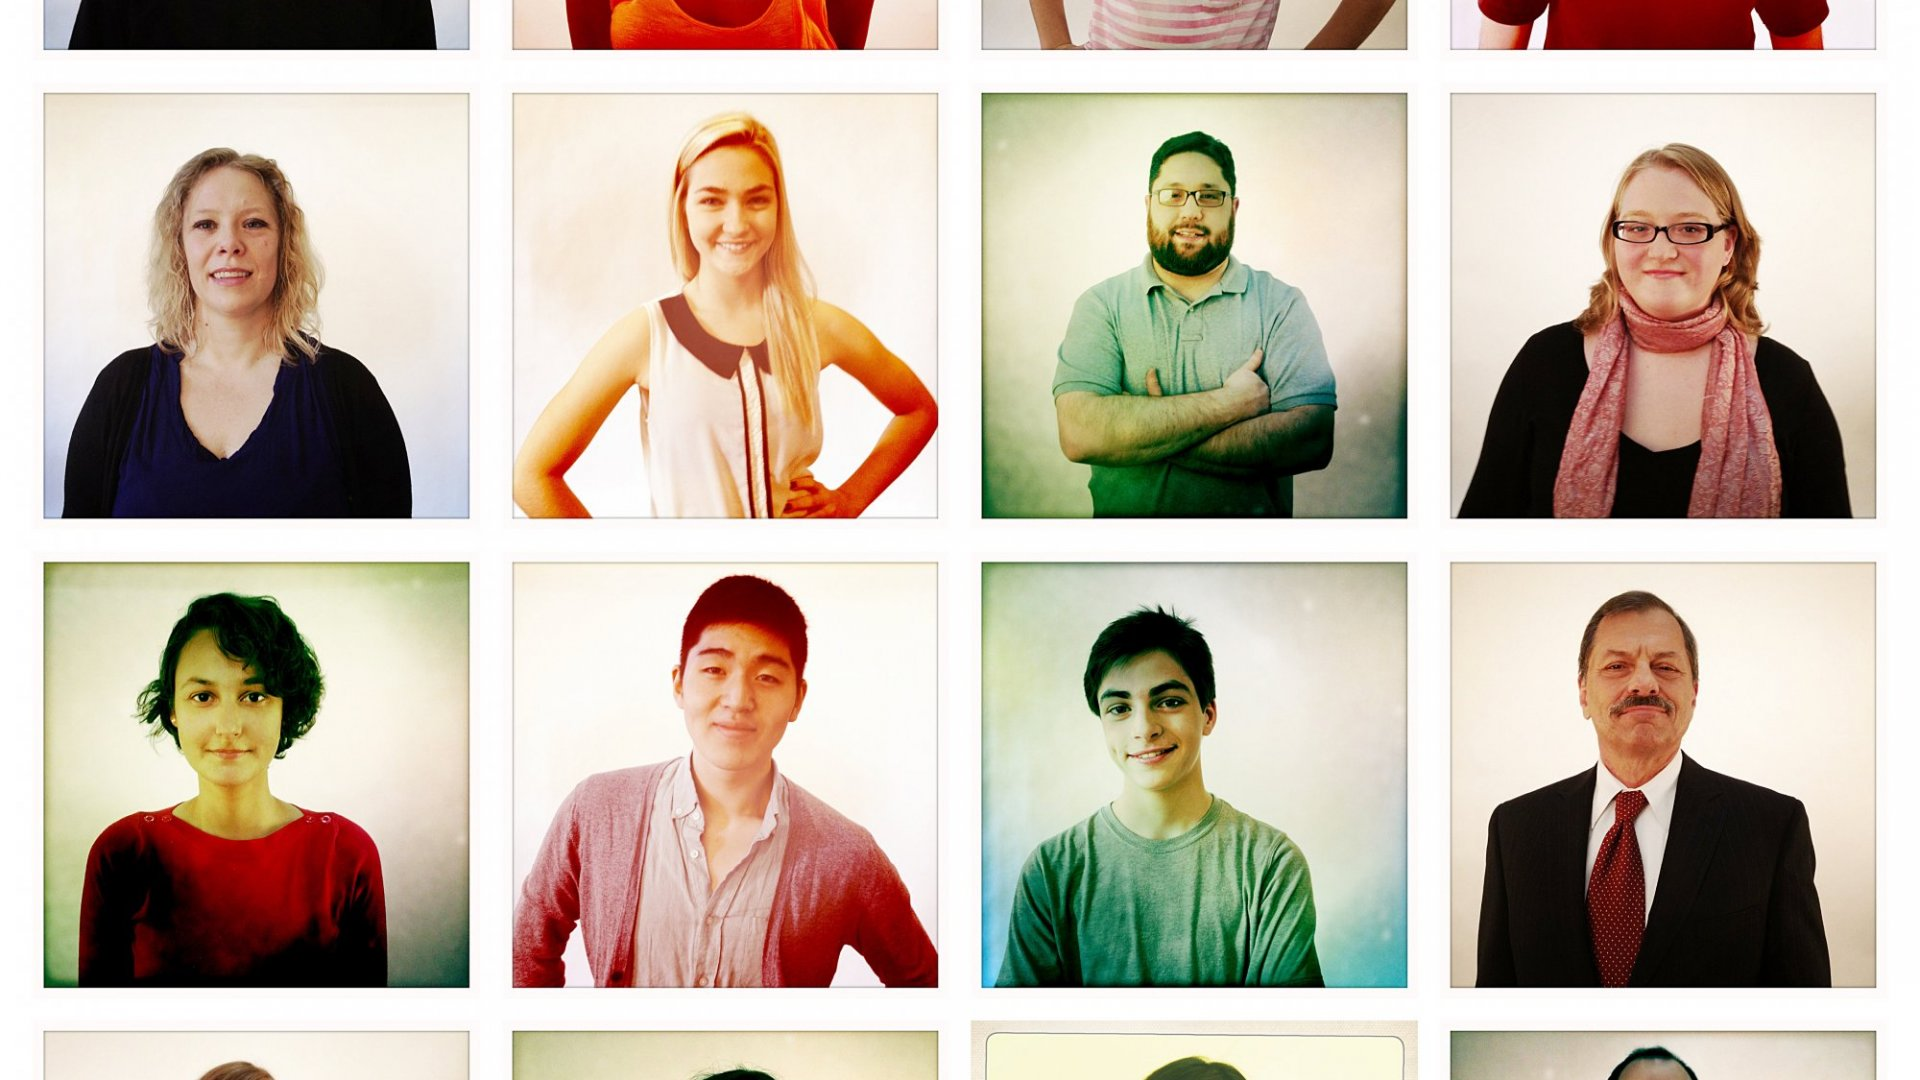 4 Simple Ways to Be More Original (and Satisfied) at Work